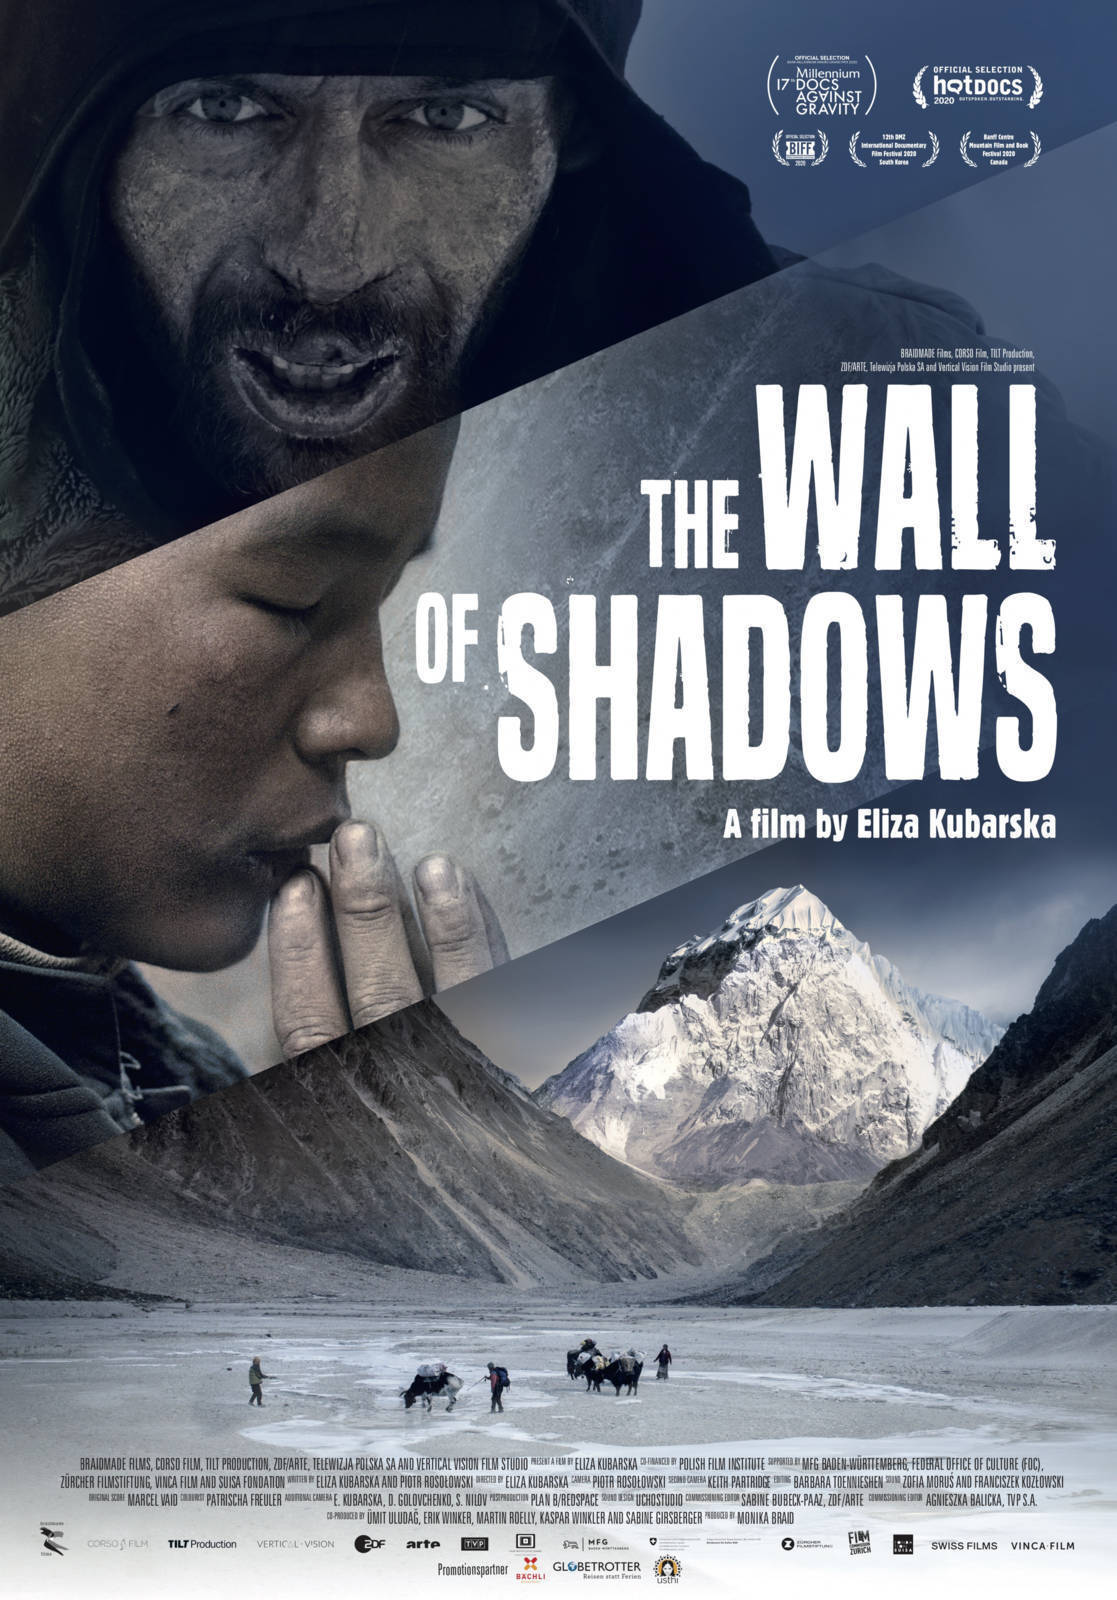 Cinema: The Wall of shadow - Premiere